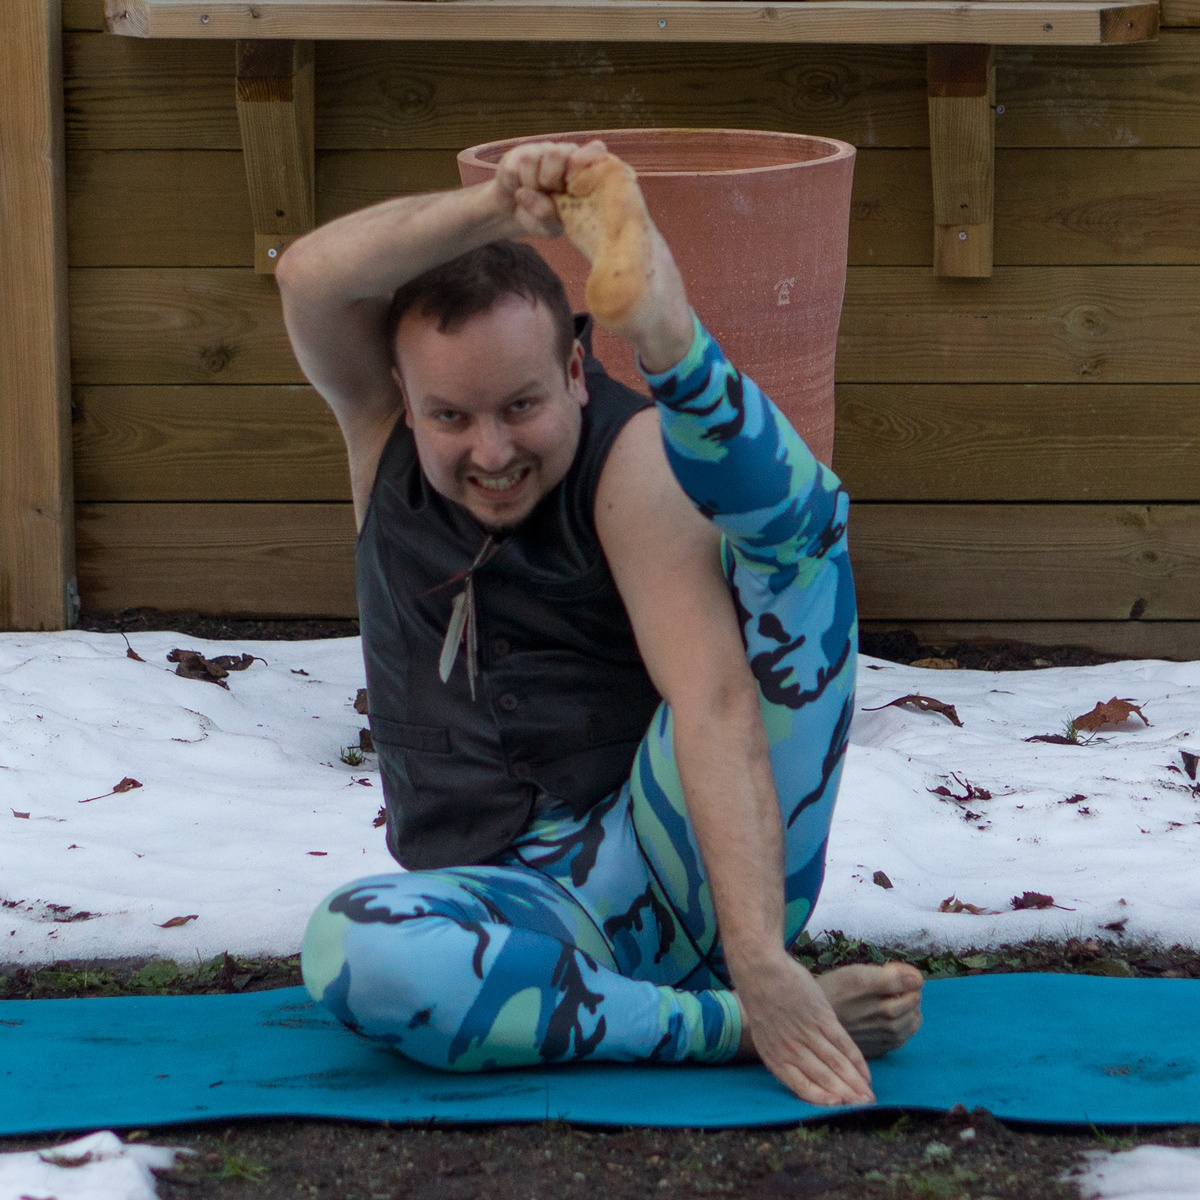 Sundial pose in January 25th 2018. Here is my  Sundialpose or parivrttasuryayantrasana. Might be the last opportunity for snowga as a lot have melted away the last few days, but regardless of